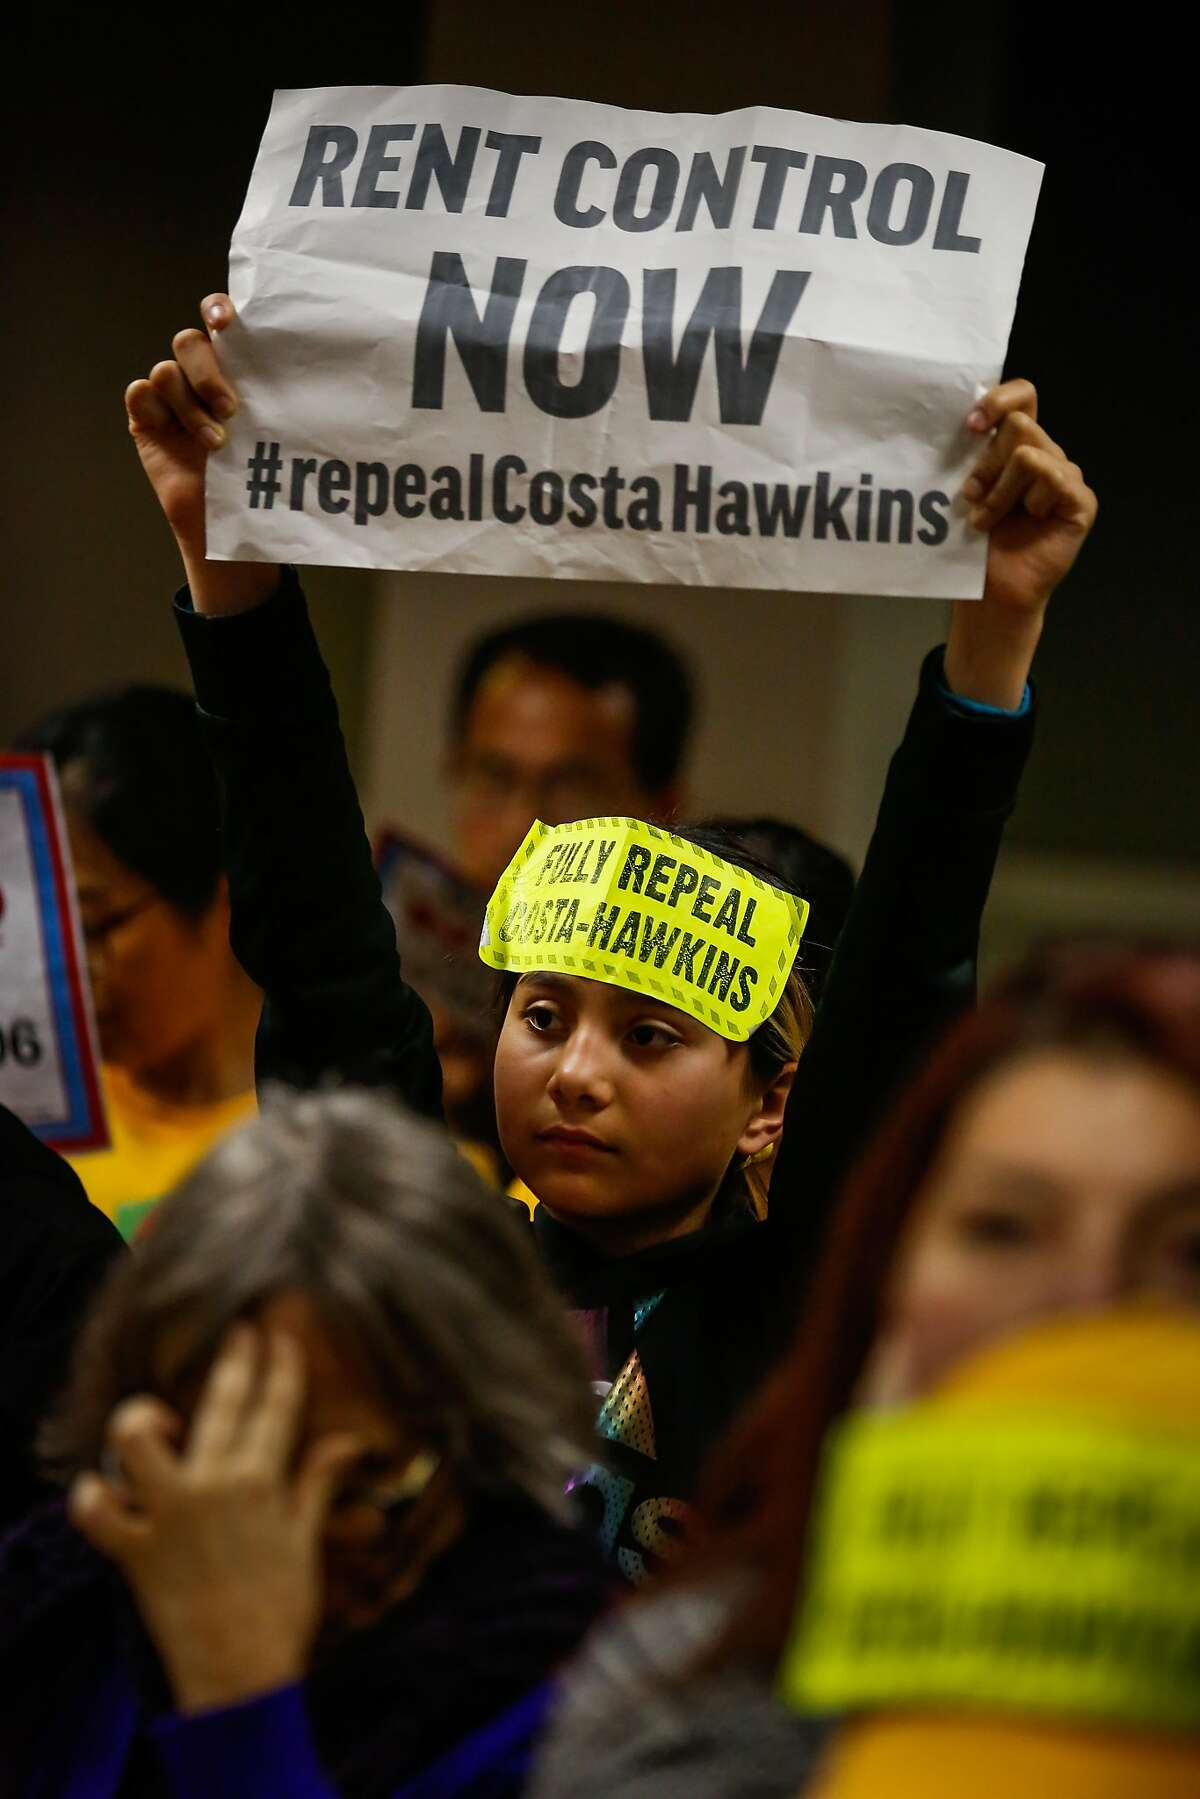 Aimee Navarro, 10, holds up a sign during a January hearing on rental housing legislation in Sacramento. New studies show deepening inequalities in housing and wages in the Bay Area.